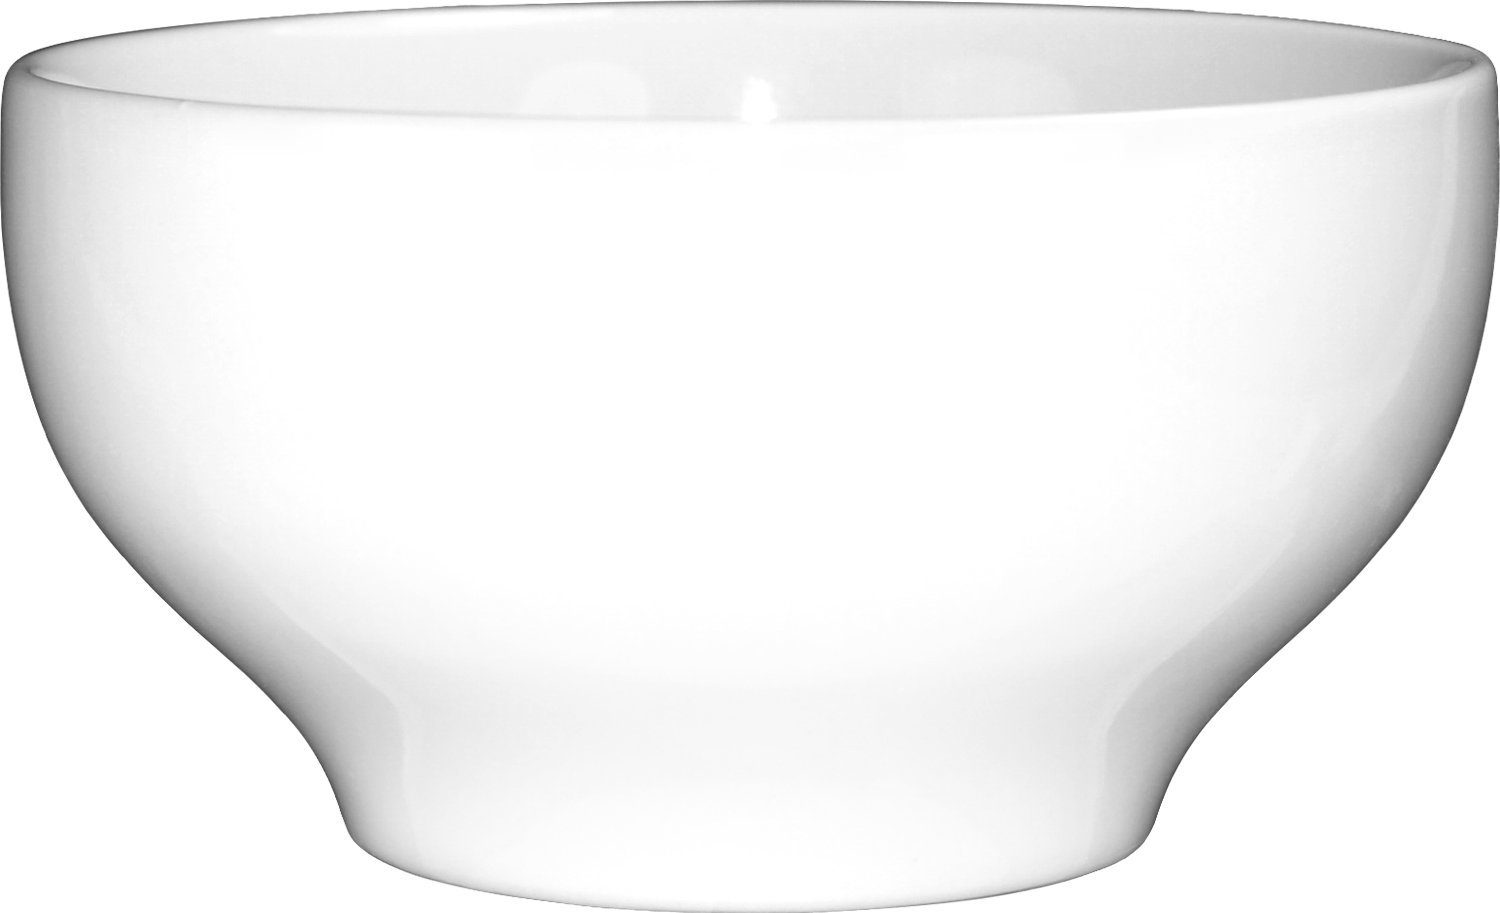 ITI-DO-45 Porcelain Dover 10-Inch Footed Bowl with Glazed Foot, 140-Ounce, 6-Piece, White